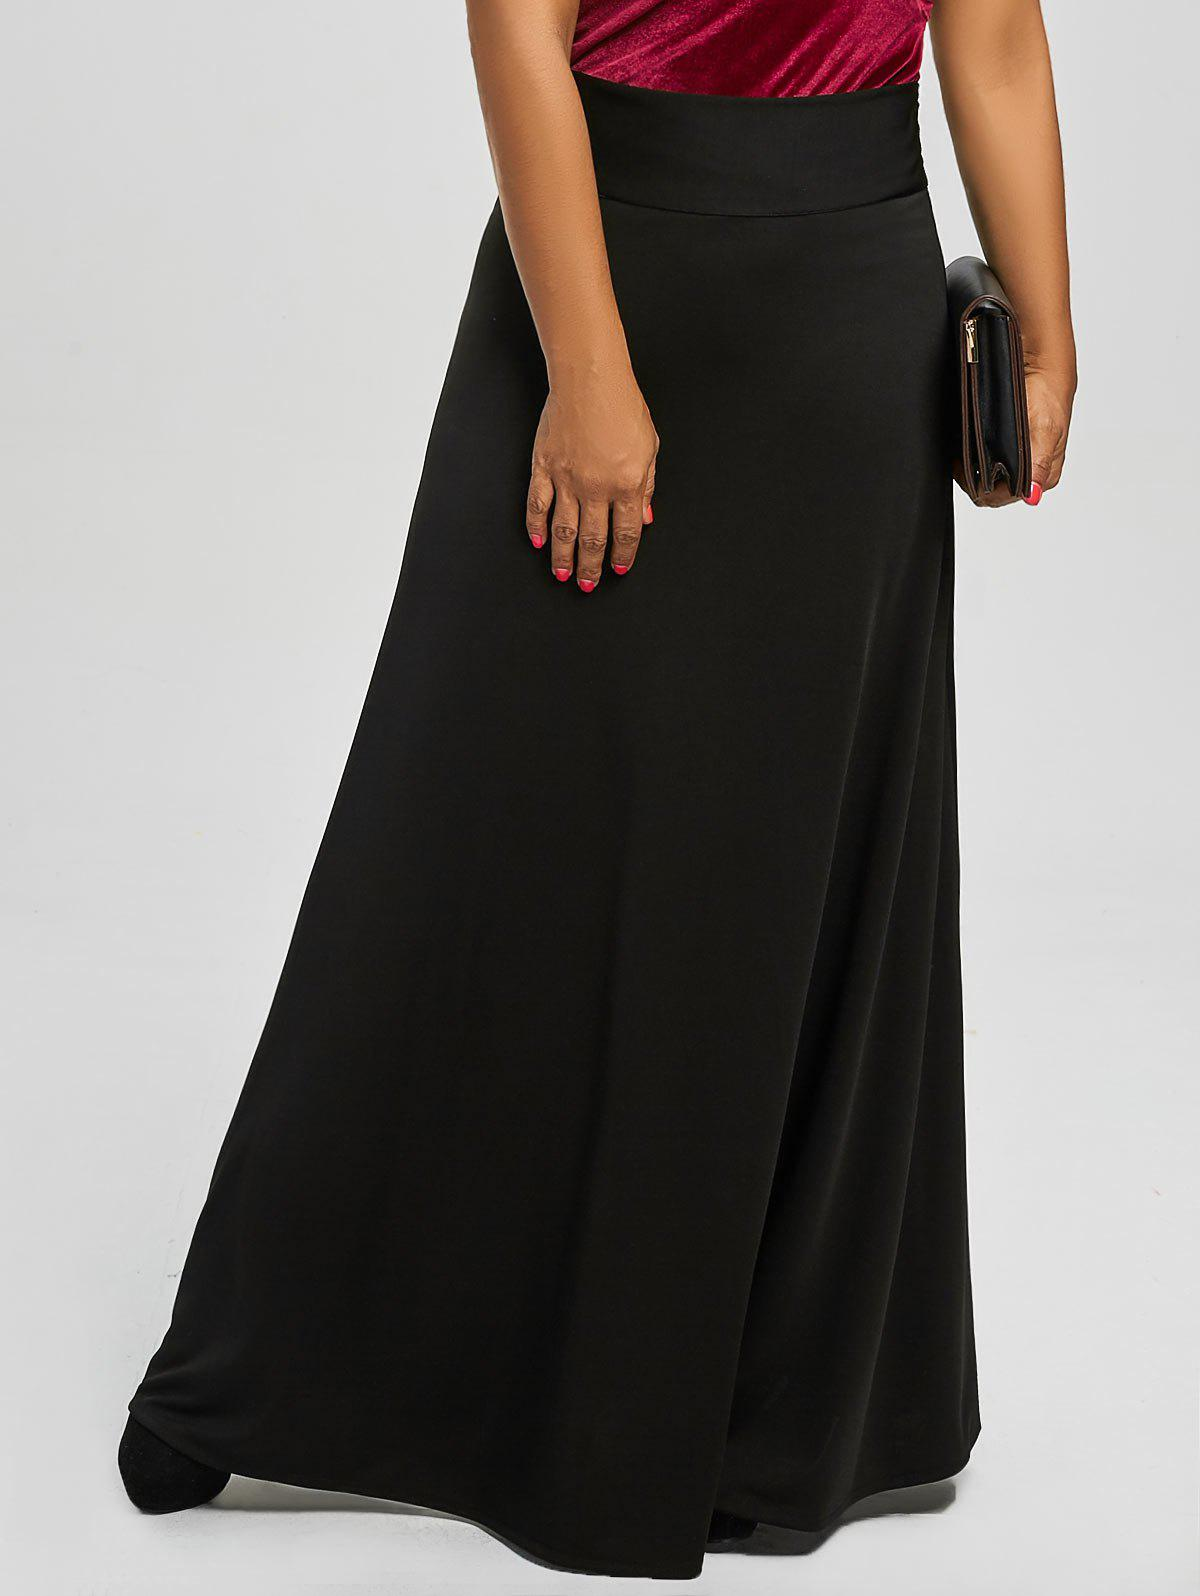 Plus Size High Waist Maxi Flare Skirts 219509105